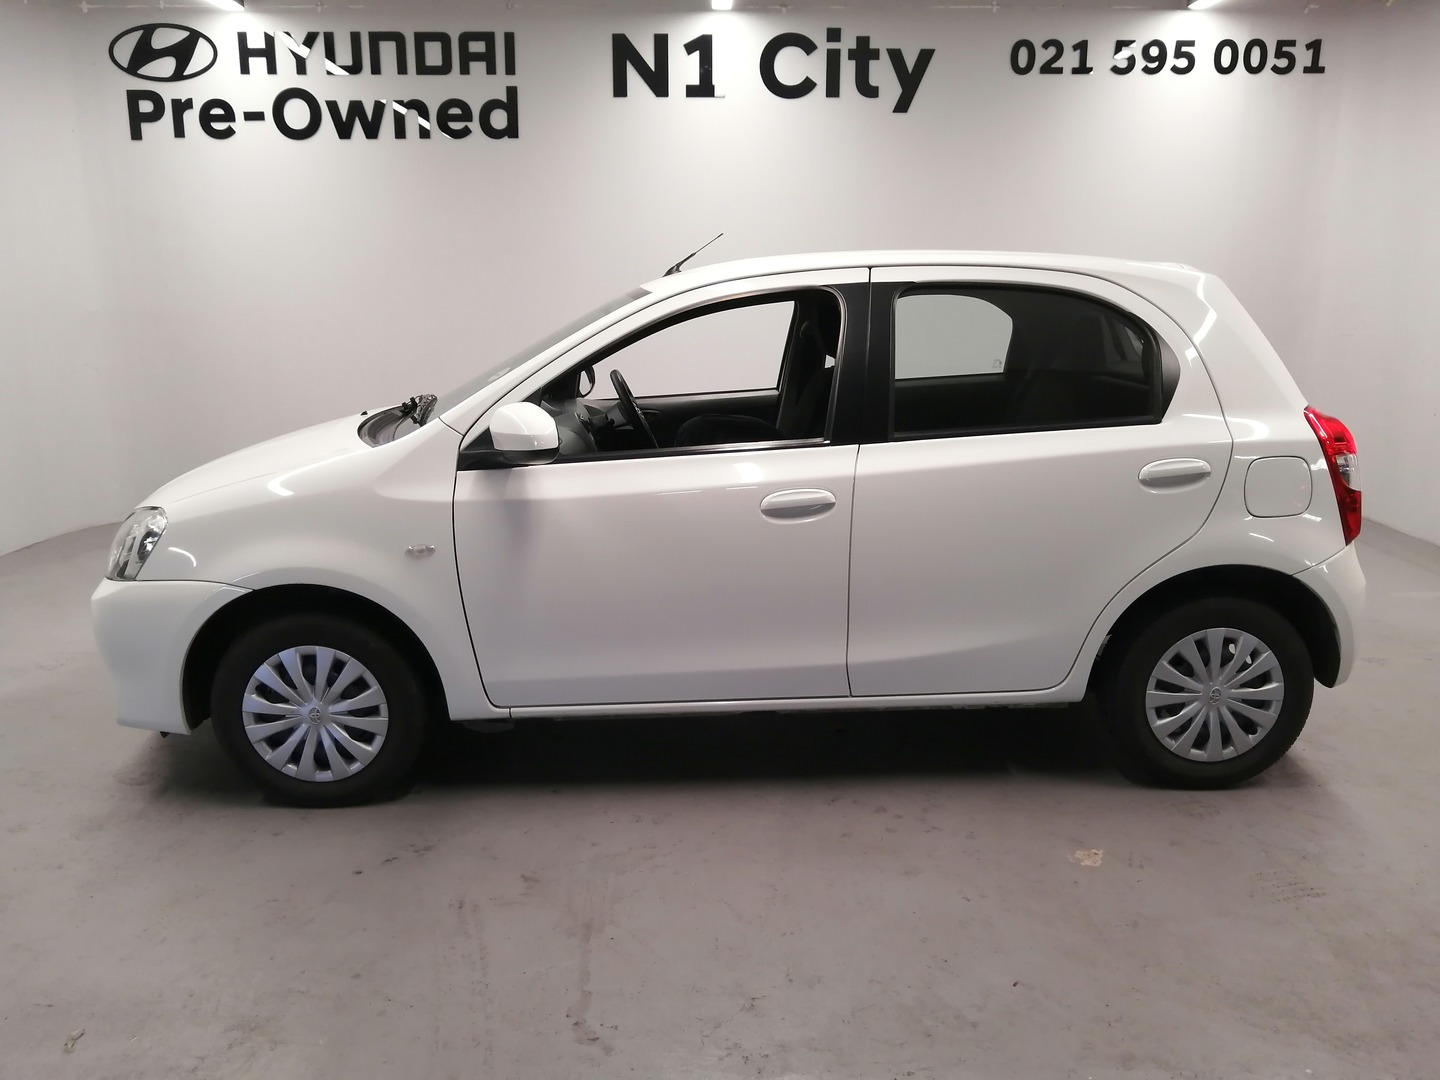 TOYOTA 1.5 Xs/SPRINT 5Dr Cape Town 2325741